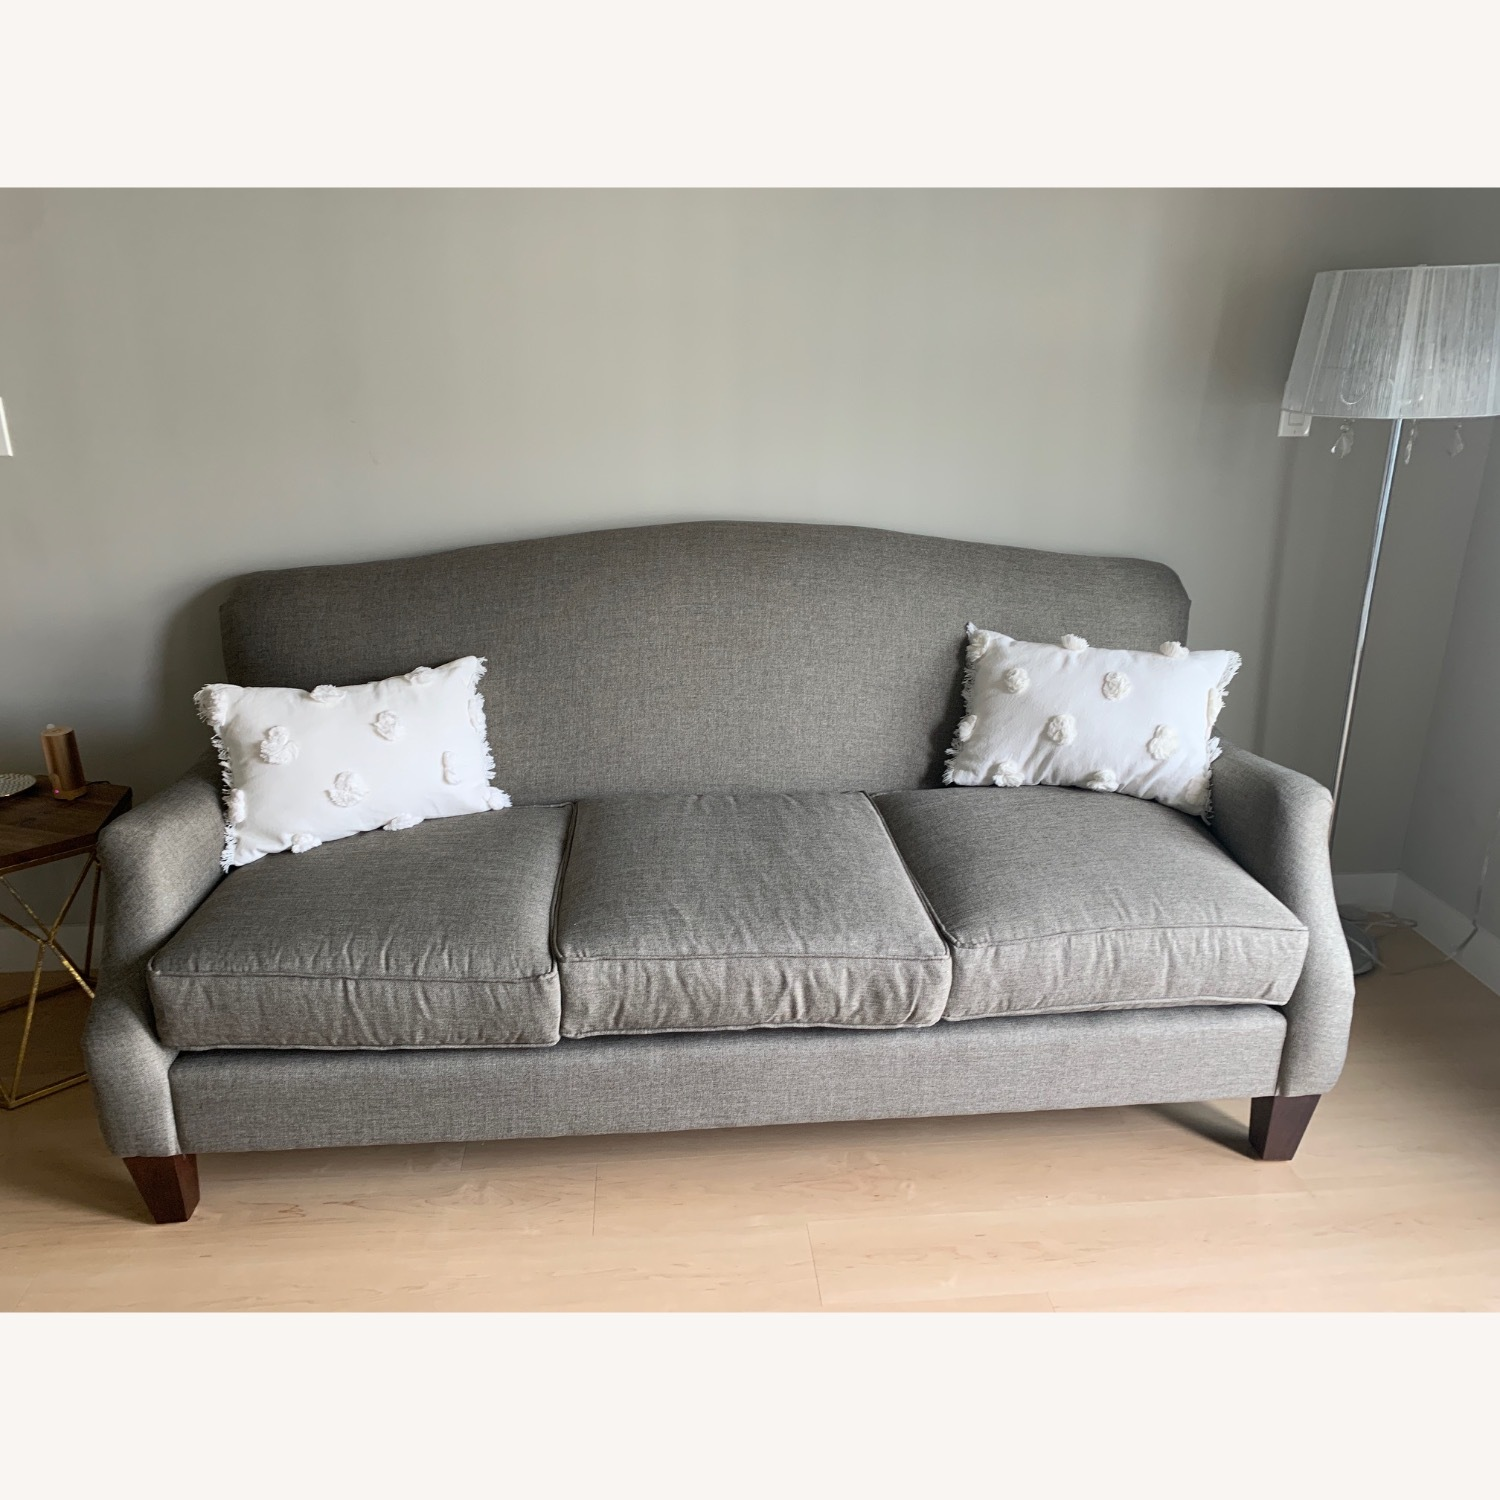 Grey Couch - image-1